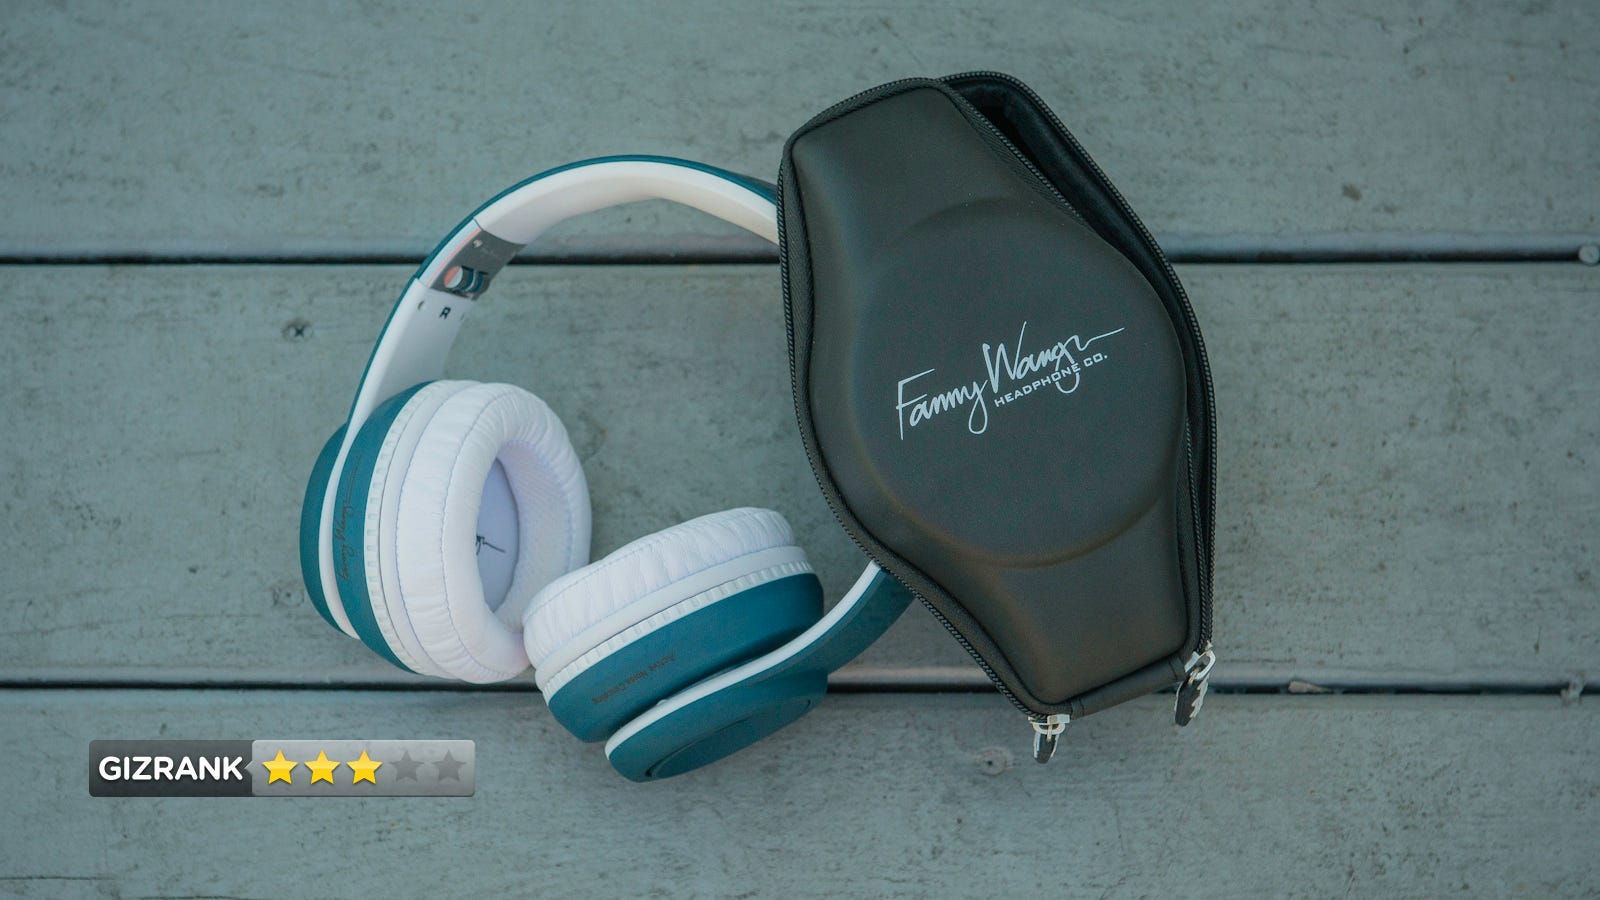 yongfa earbuds - Fanny Wang 3001 Noise-Canceling Headphones Review: Phat Sound, Phony Fashion